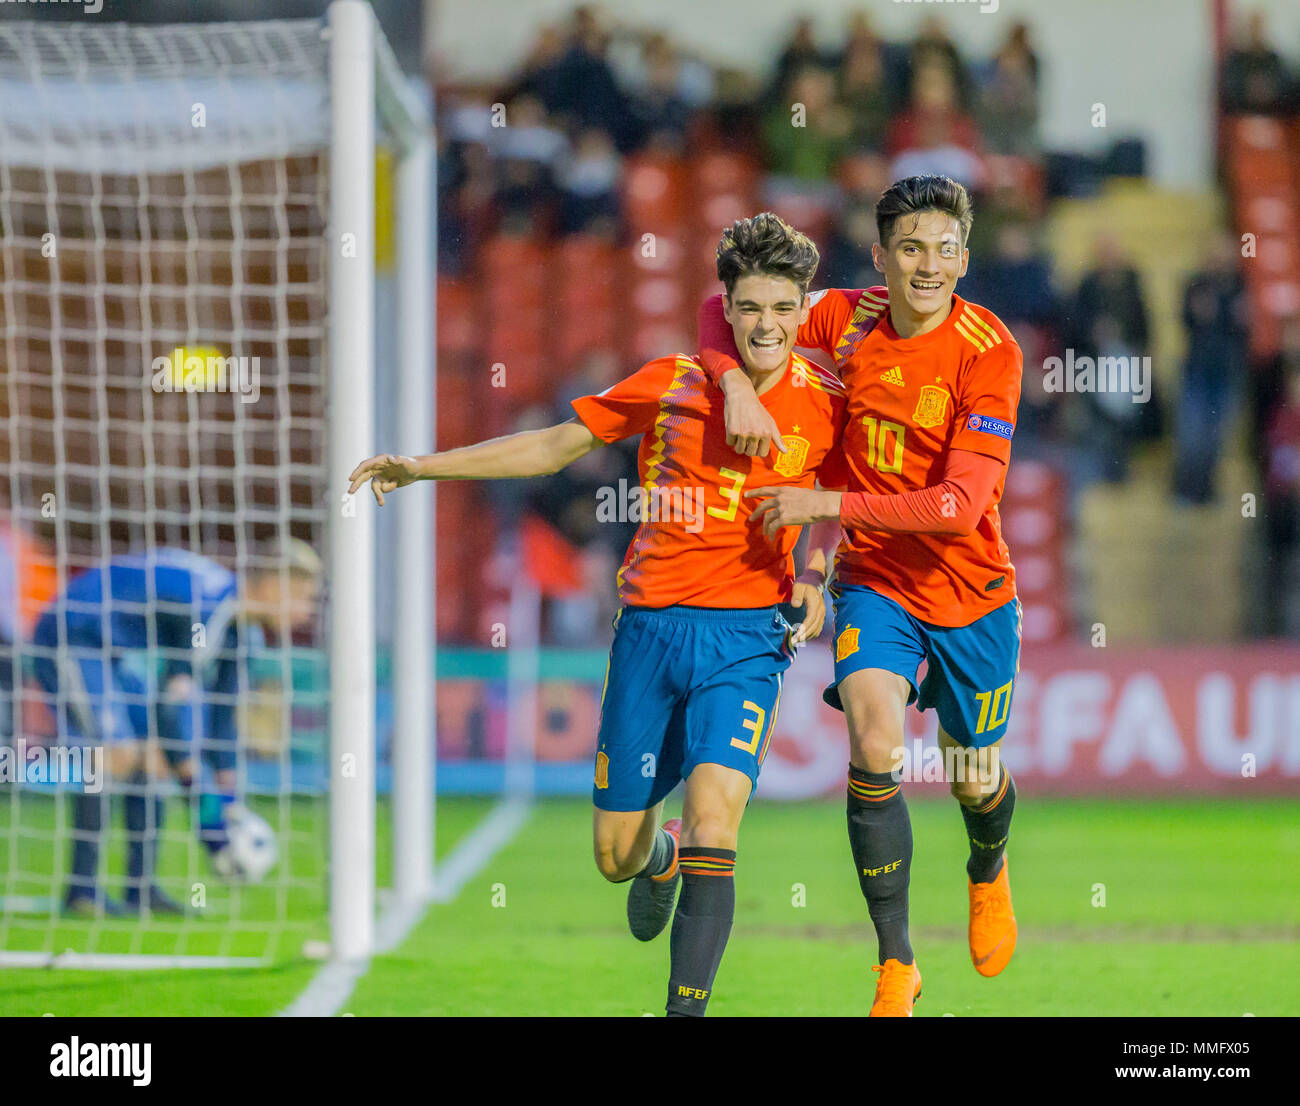 11th May Bankss Stadium, Walsall, England; UEFA Under 17 European Championships, Spain versus Germany; Miguel Gutierrez Ortega of Spain celebrates with his team mates after scoring in the 80th minute (5-1) - Stock Image